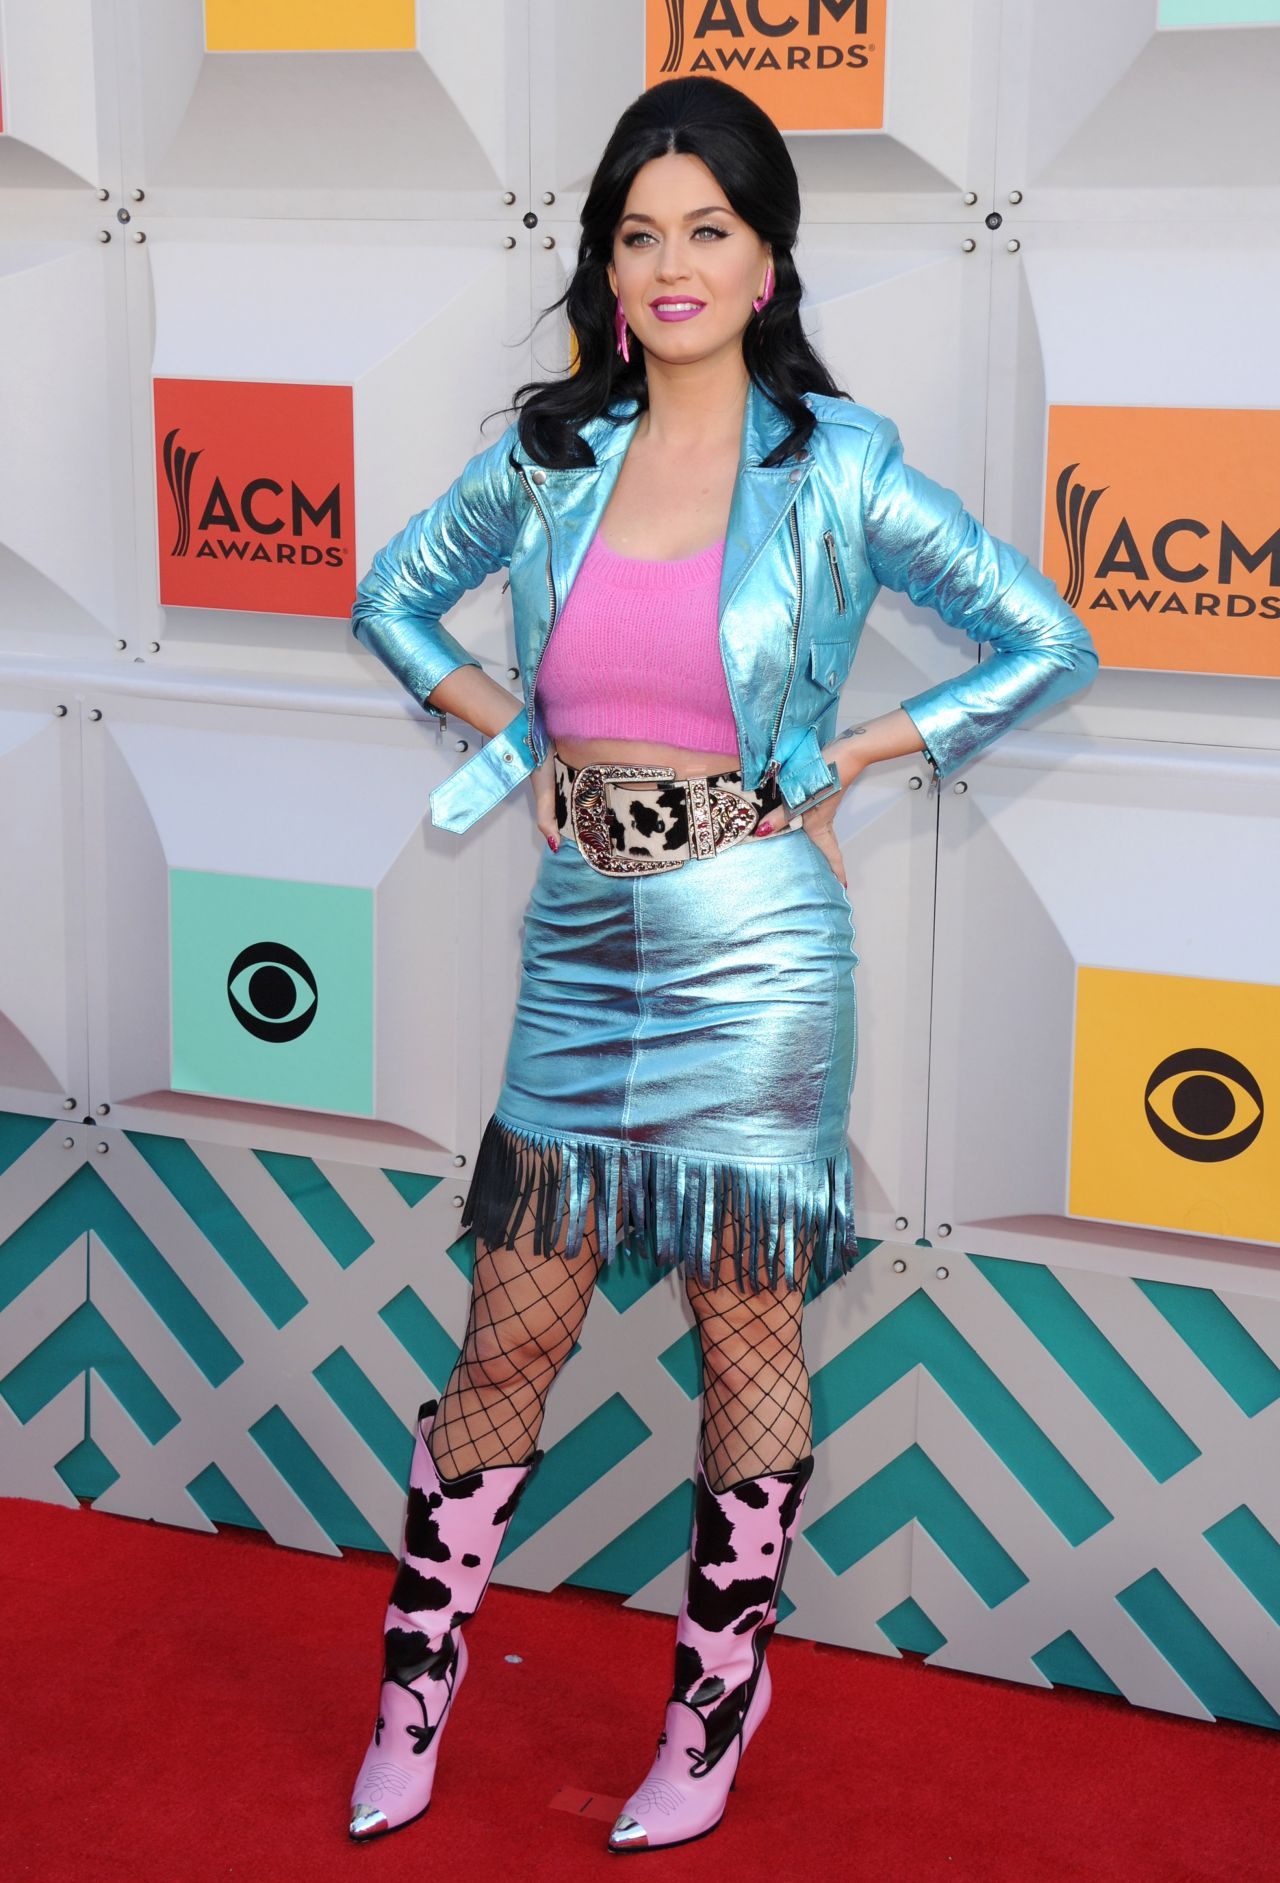 Katy Perry Academy Of Country Music Awards 2016 In Las Vegas